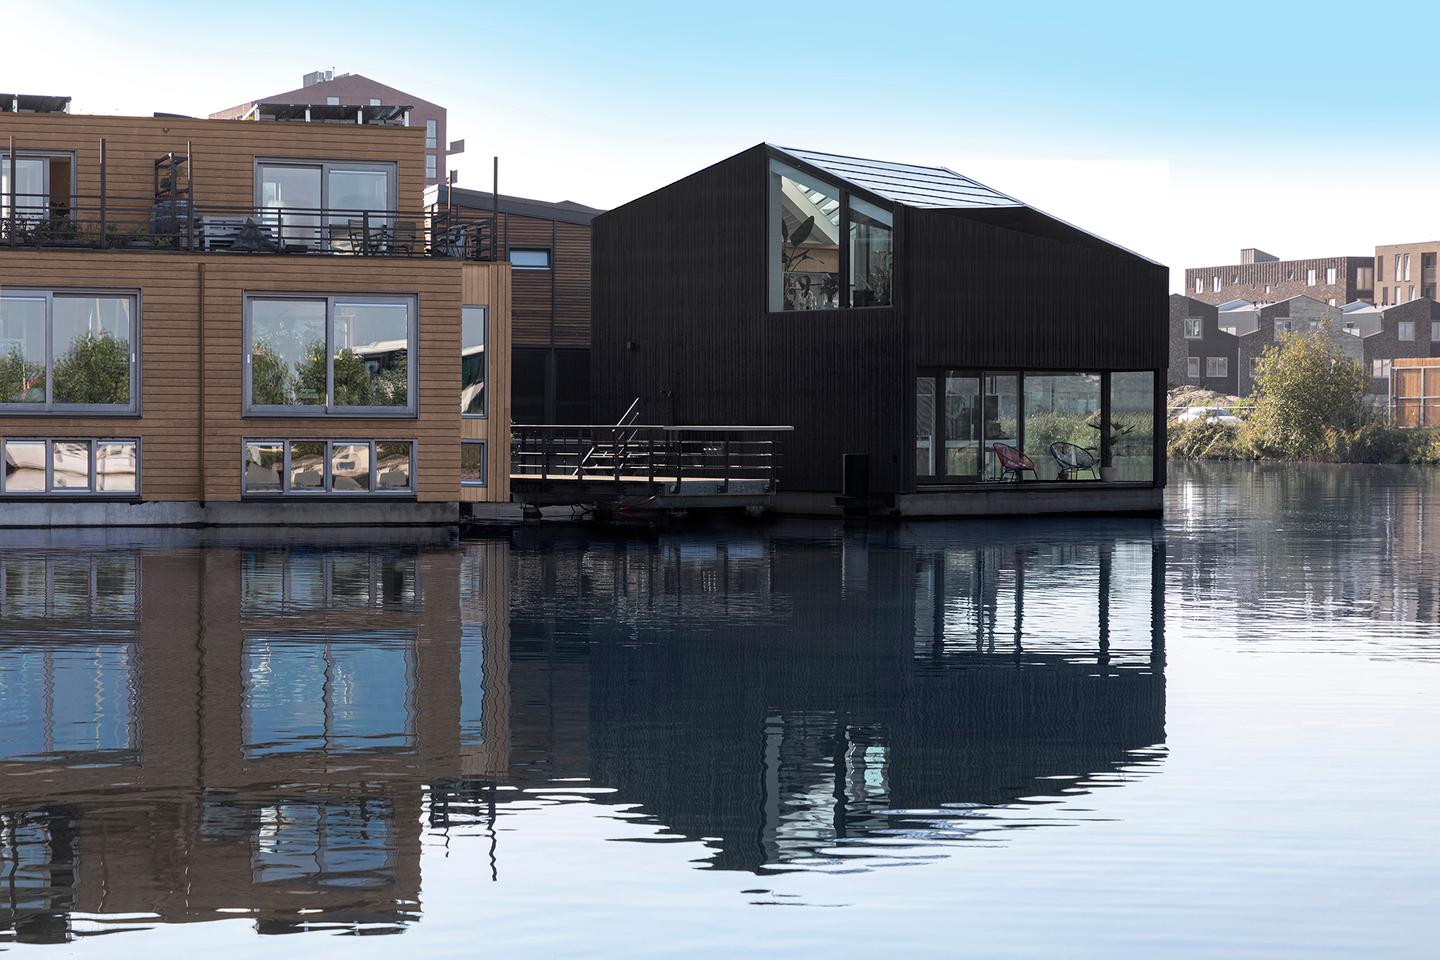 Dutch architectural studio i29 has recently completed a striking eco-friendly floating home in Amsterdam